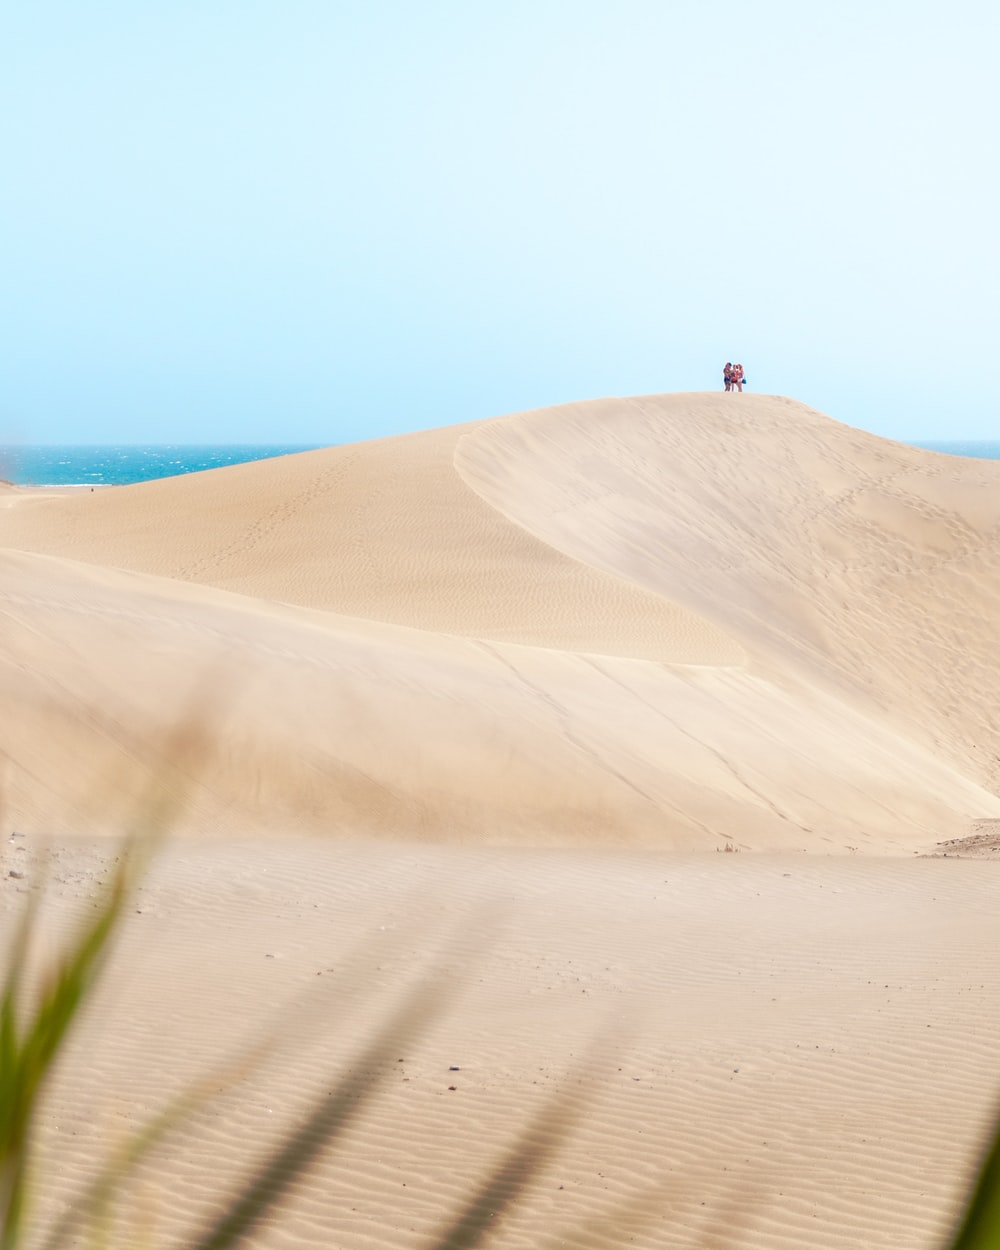 person standing on brown sand near body of water during daytime